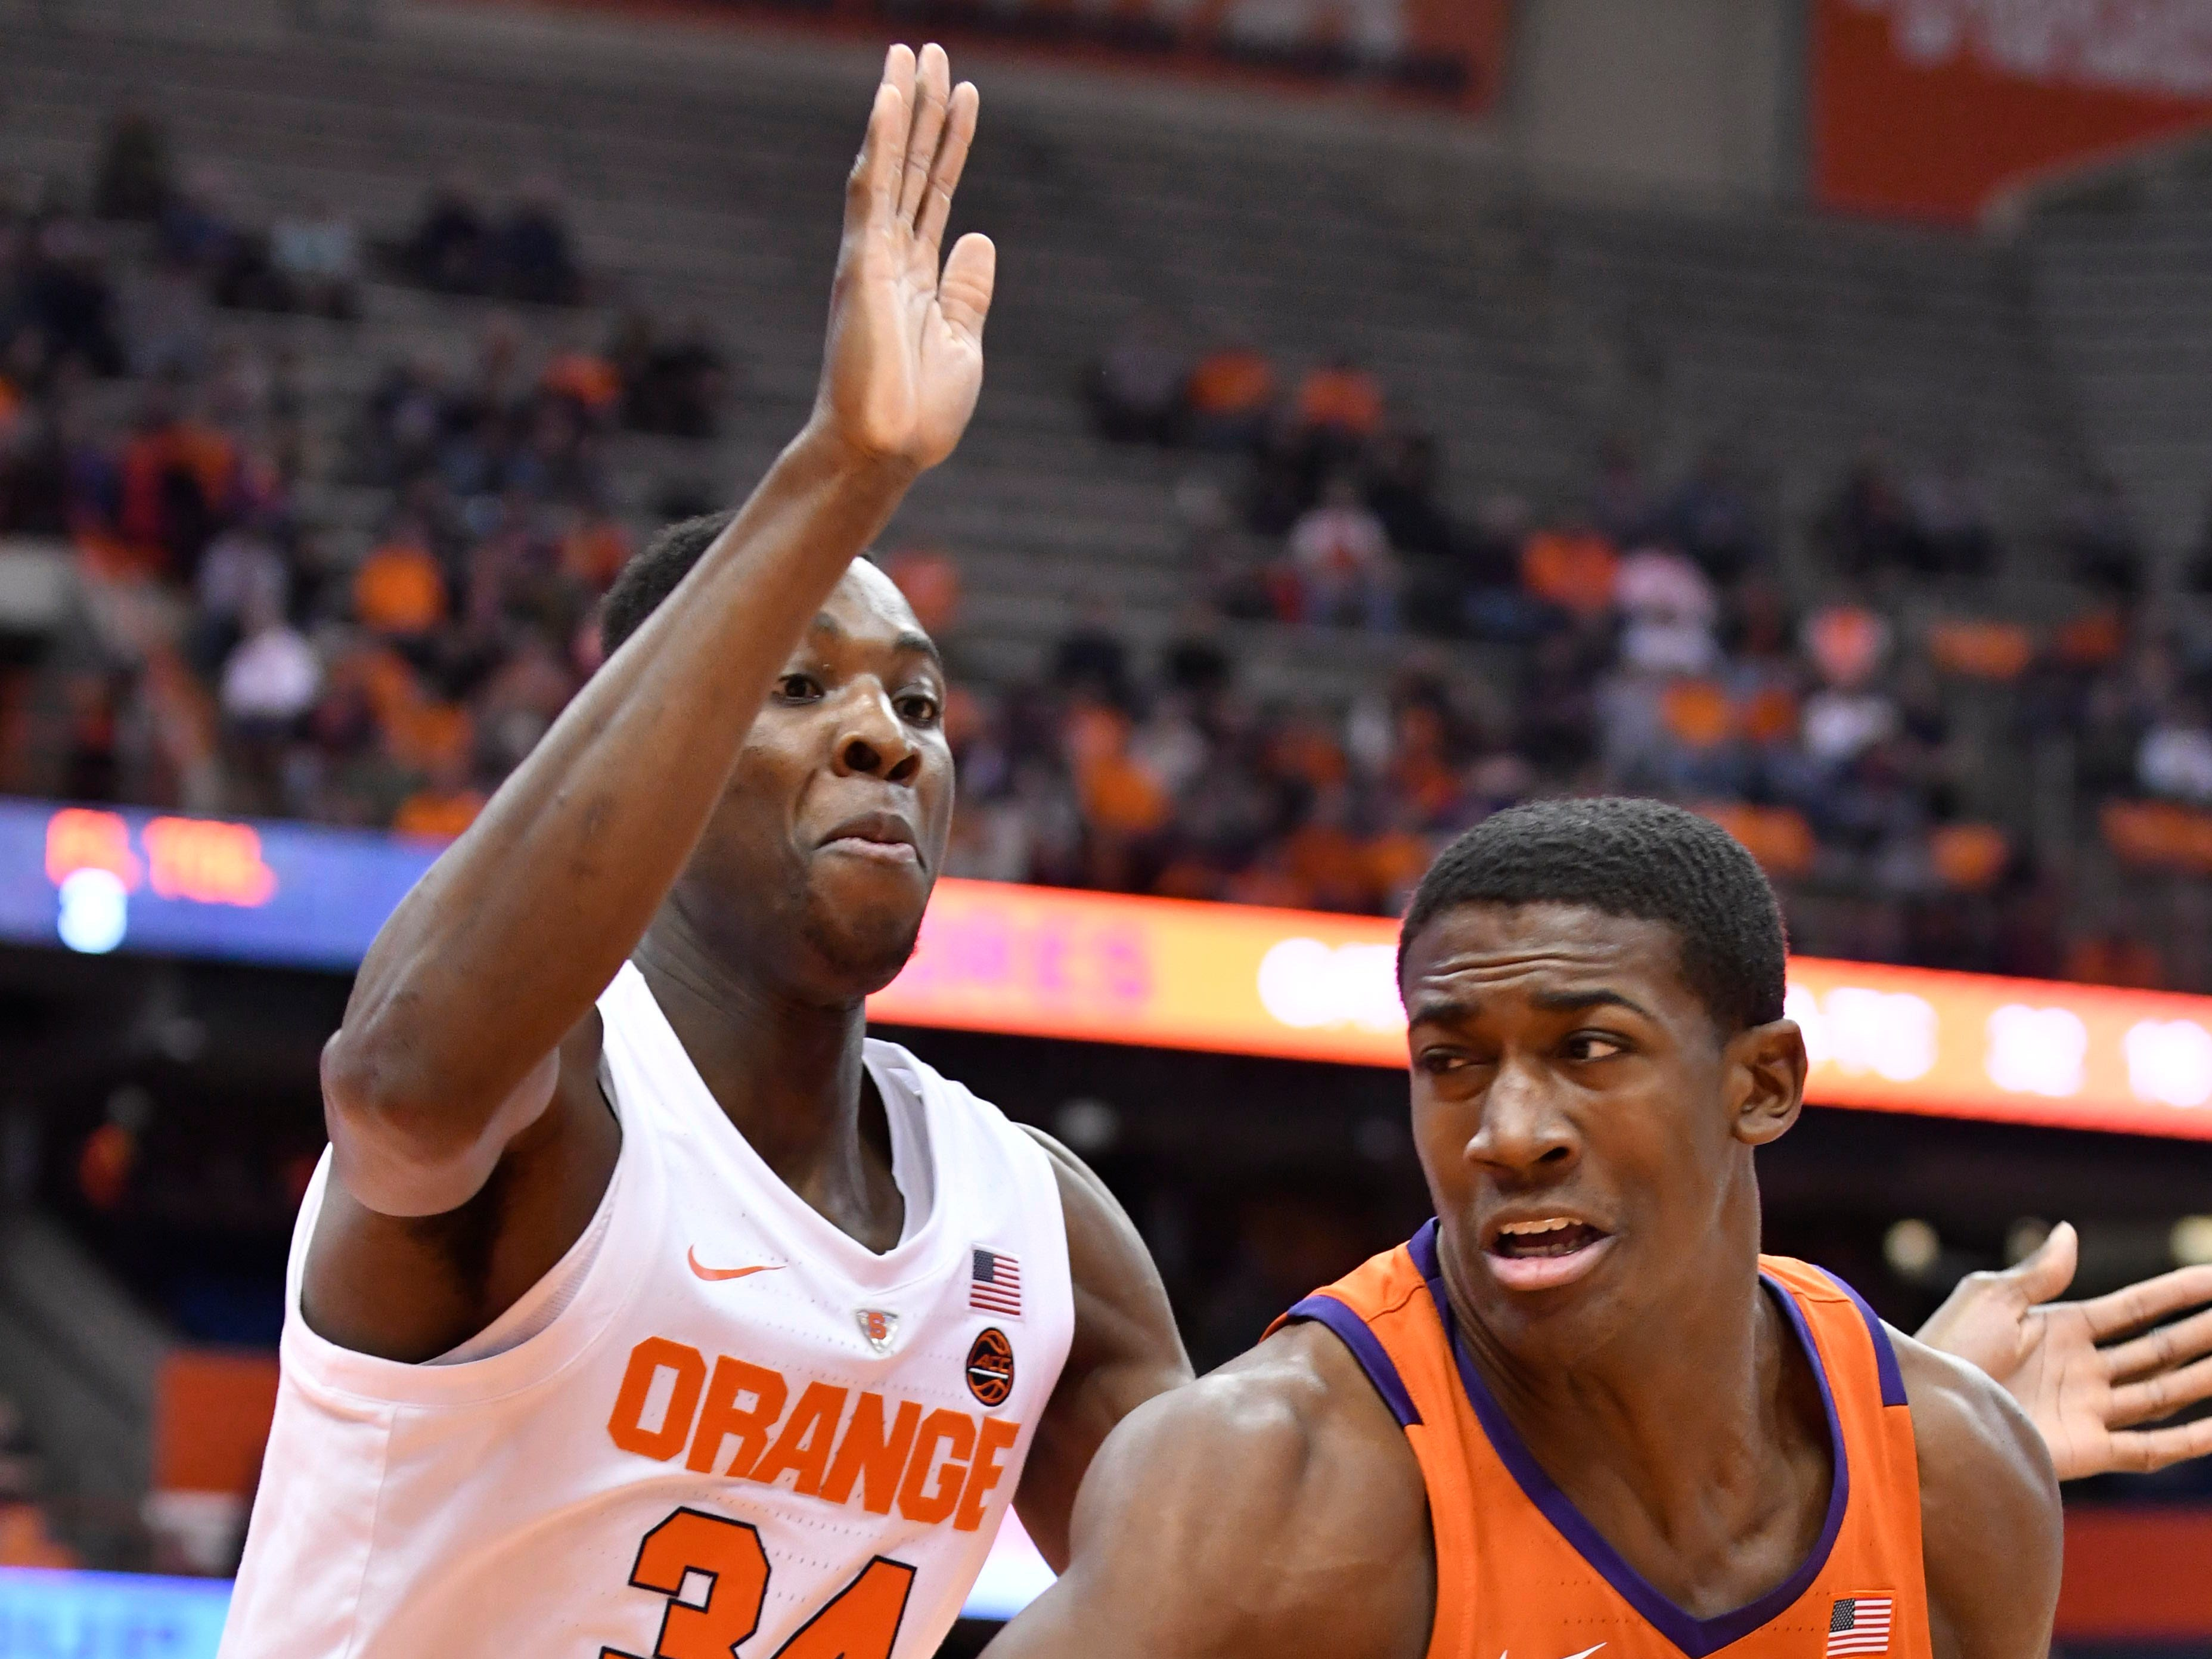 Jan 9, 2019; Syracuse, NY, USA; Clemson Tigers center Trey Jemison (55) turns to the basket as Syracuse Orange forward Bourama Sidibe (34) defends during the first half at the Carrier Dome.